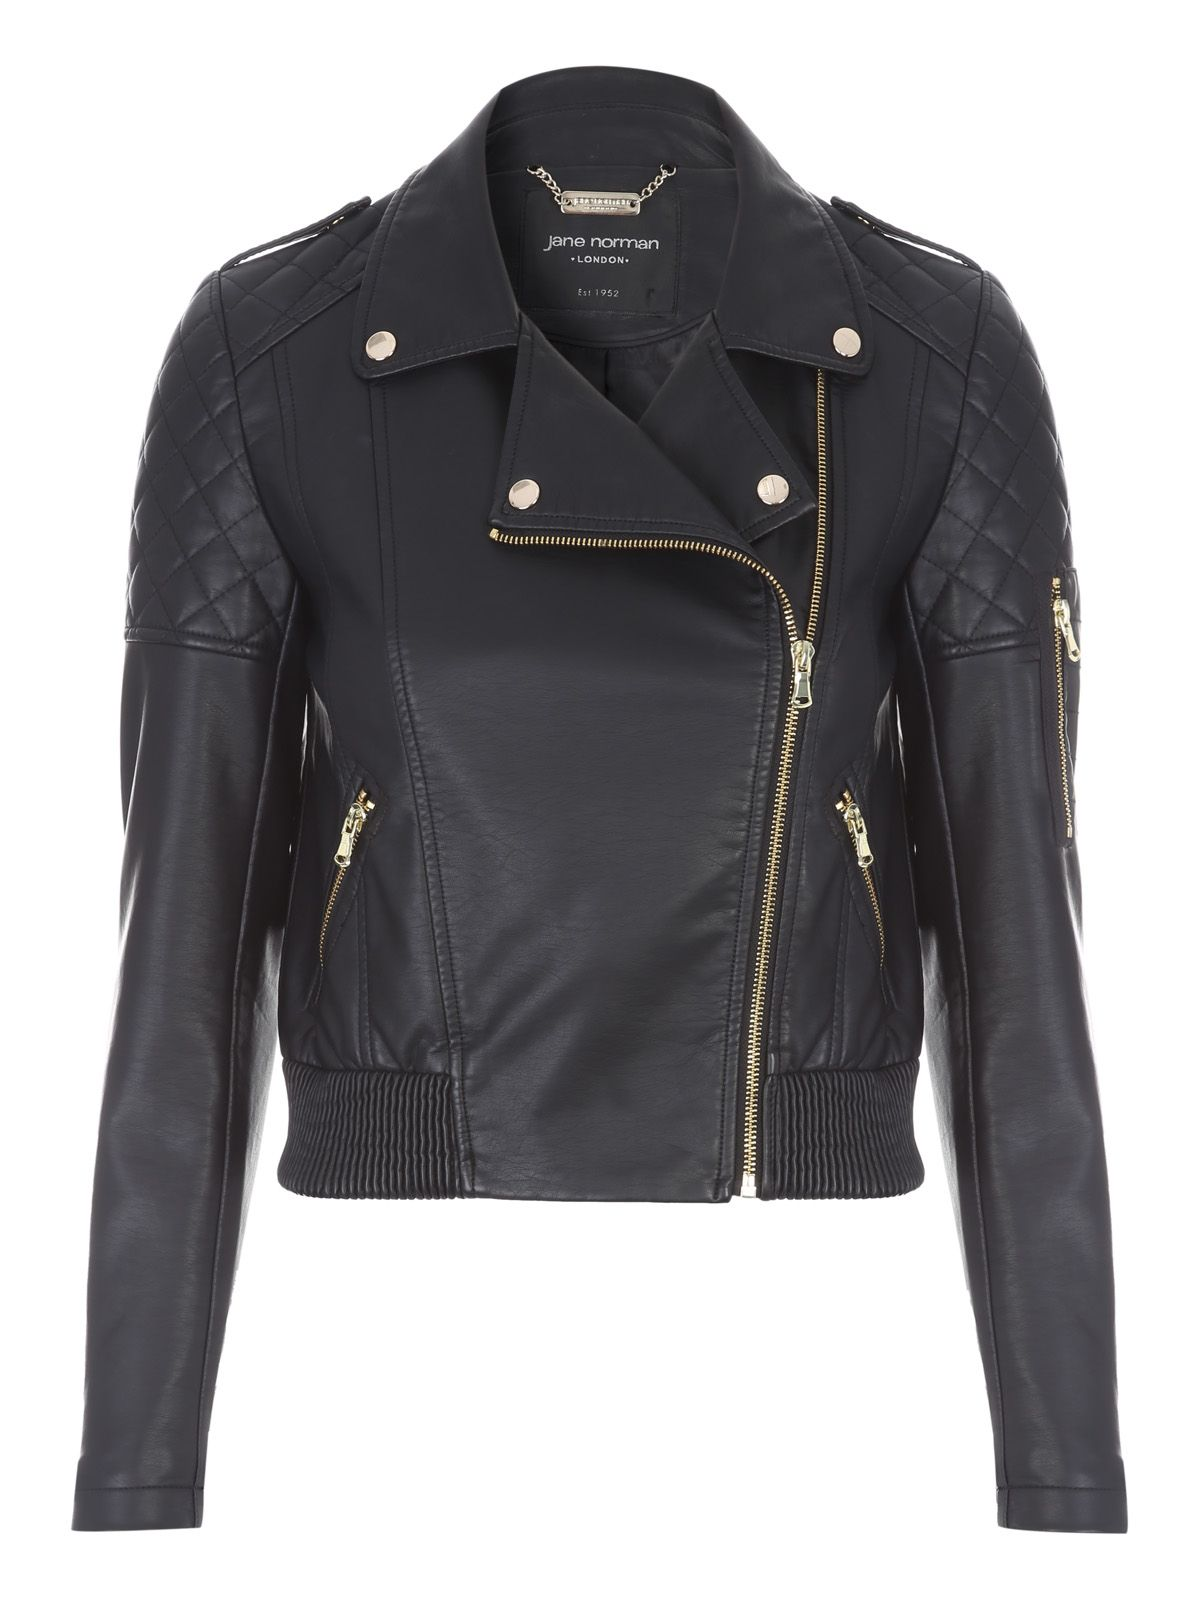 Jane Norman Black PU Bomber Jacket, Black